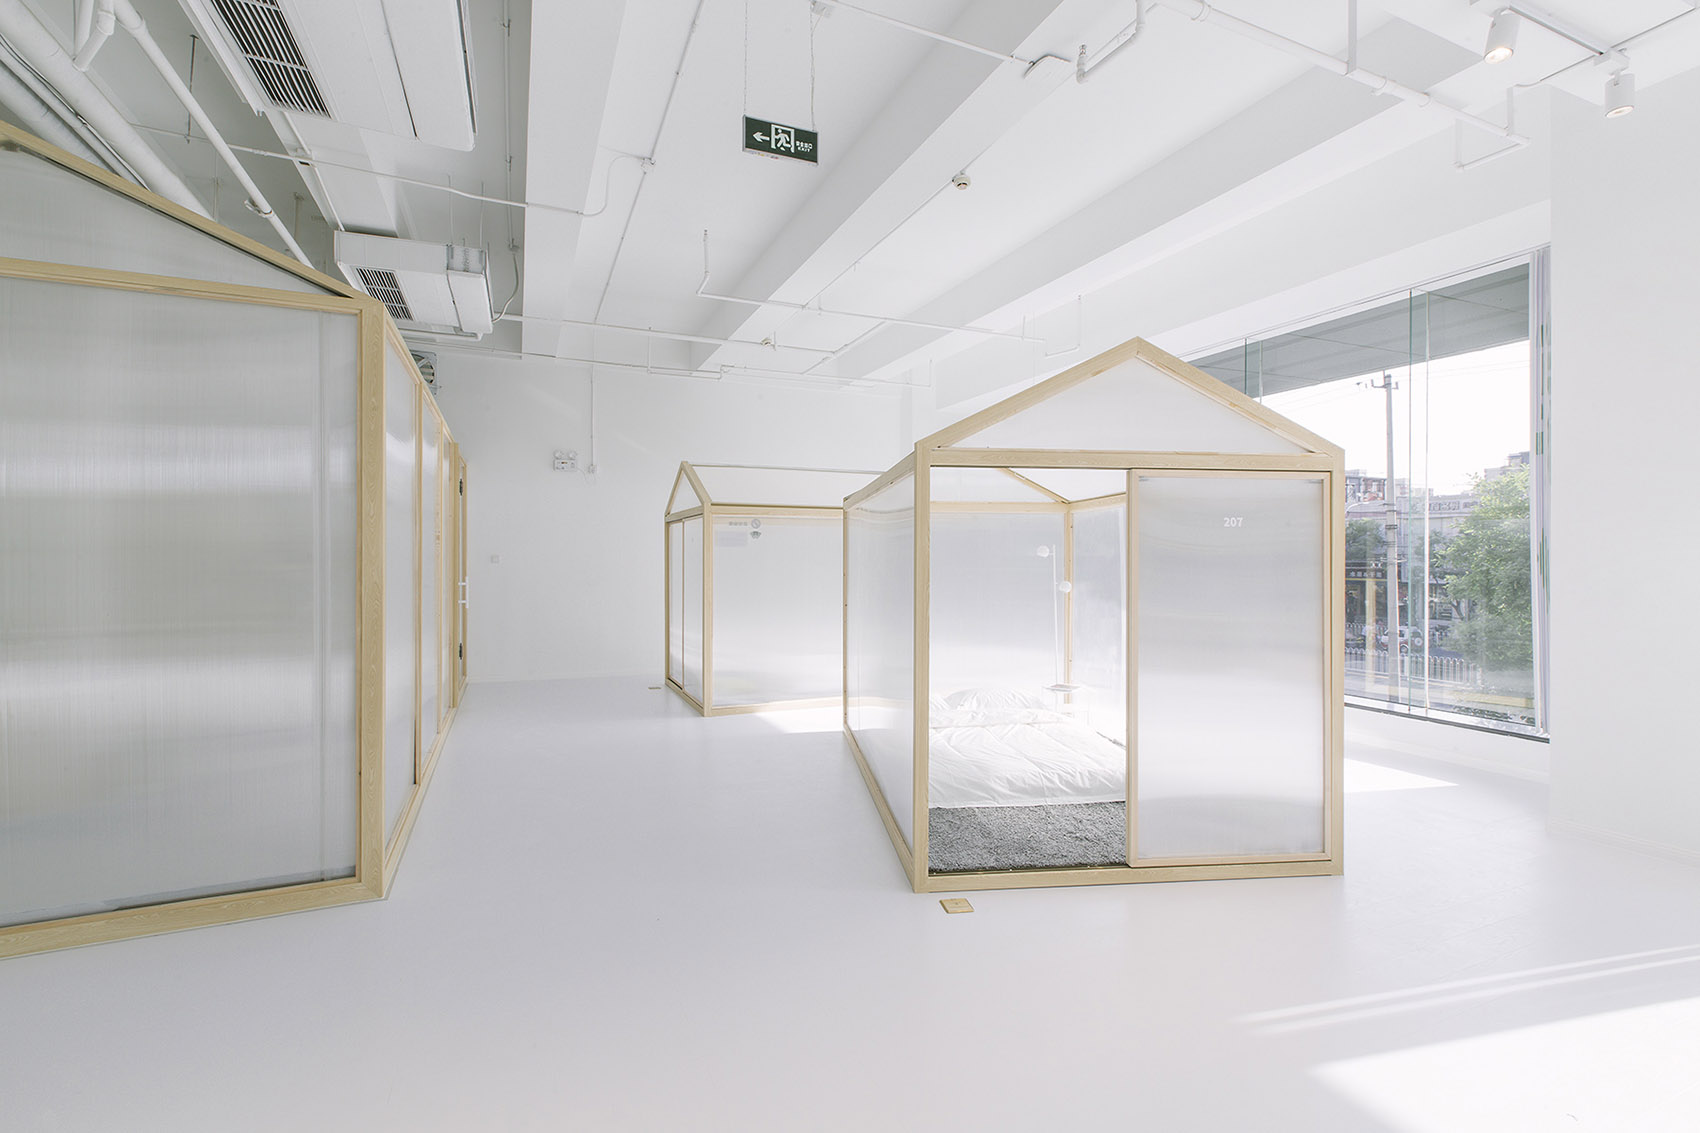 14-Together-Hostel-indoor-camping-space-for-youth-By-Jacobsen-Arquitetura